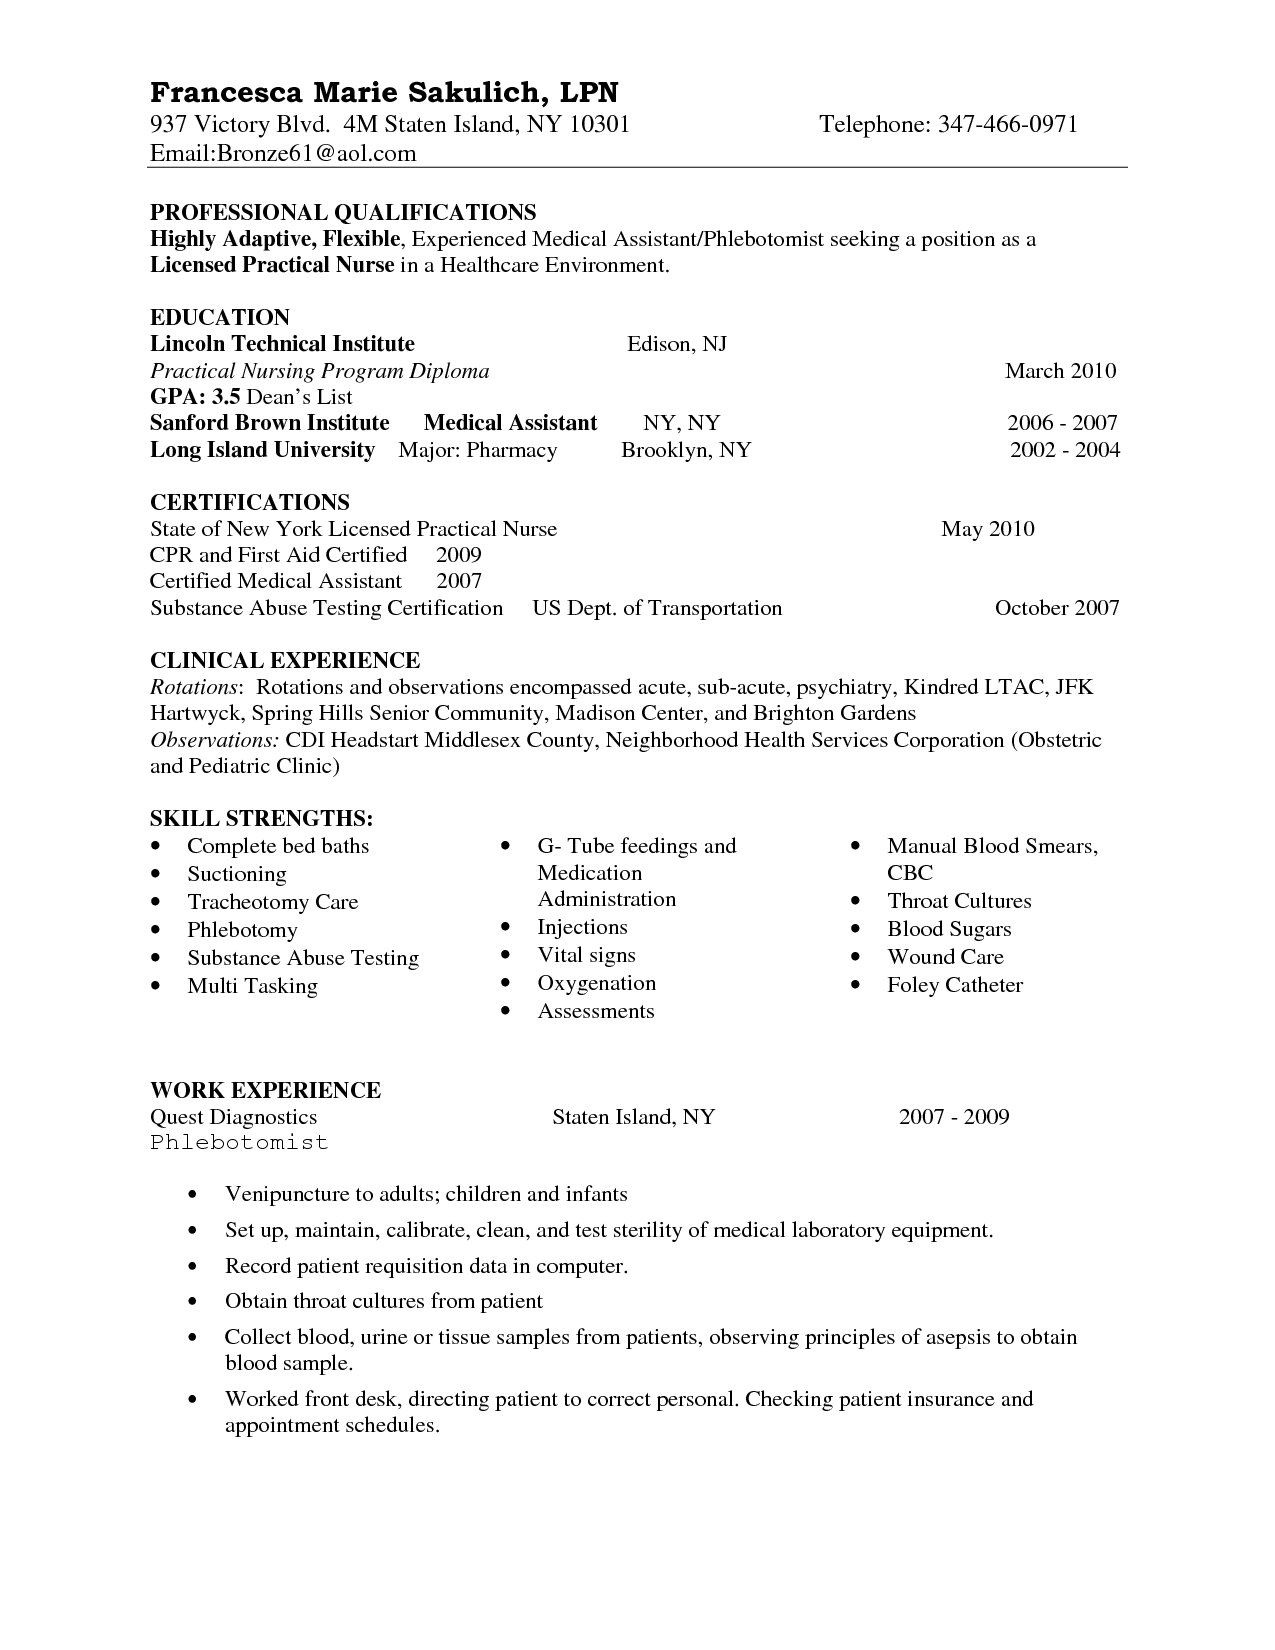 Nursing Resume Samples Entry Level Lpn Resume Sample  Nursing  Pinterest  Nursing